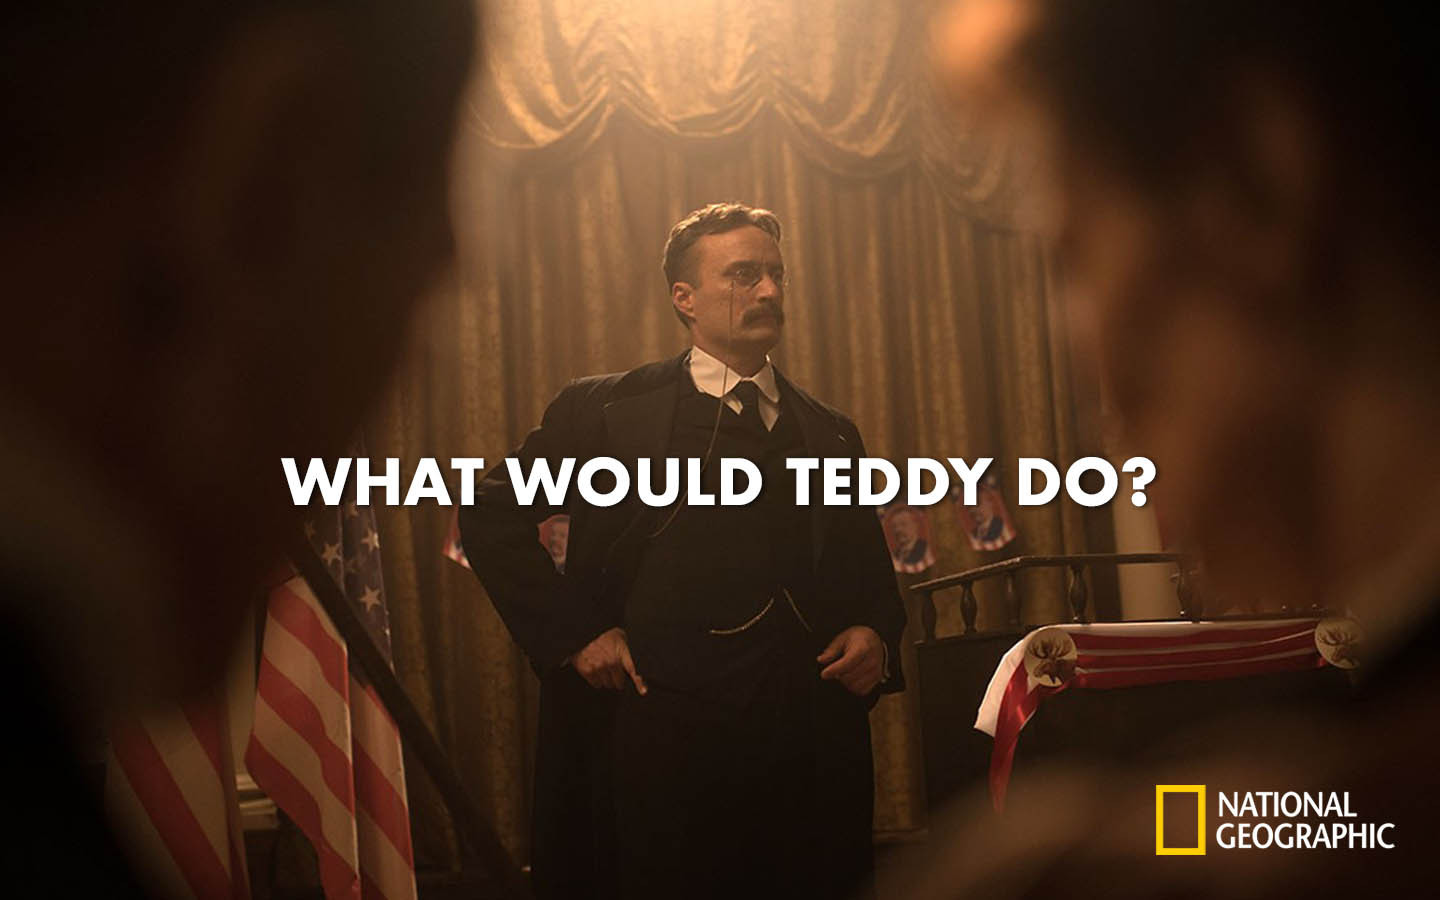 WHAT WOULD TEDDY DO?